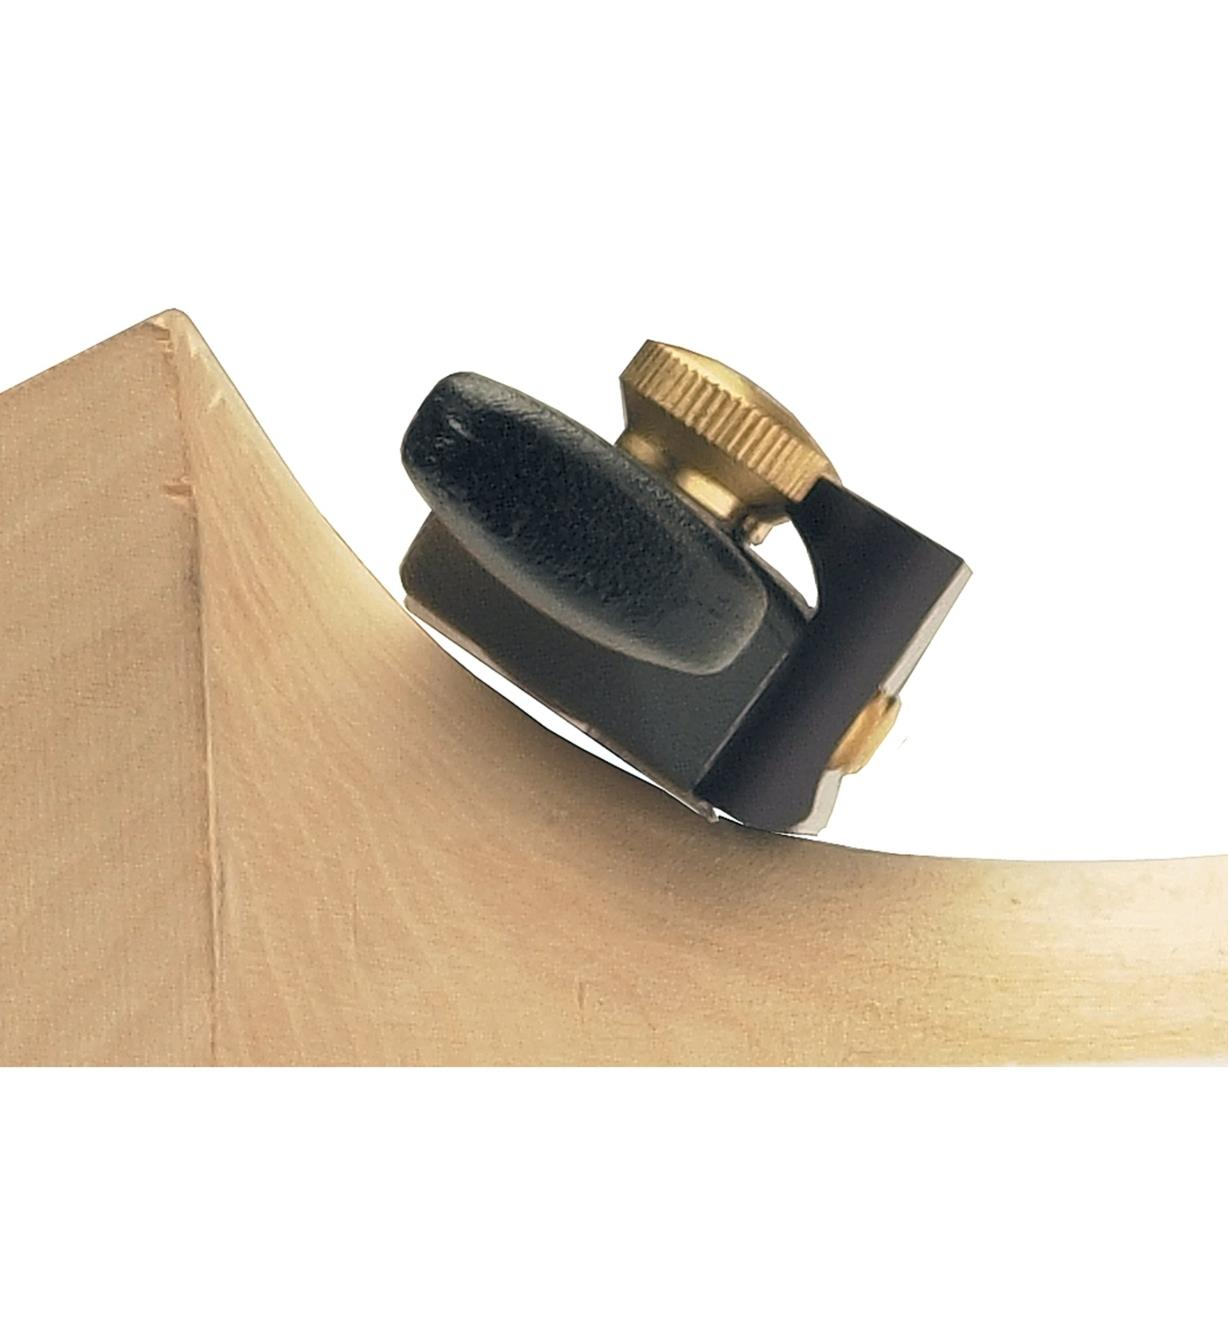 05P3201 - Veritas Low-Angle Spokeshave, A2